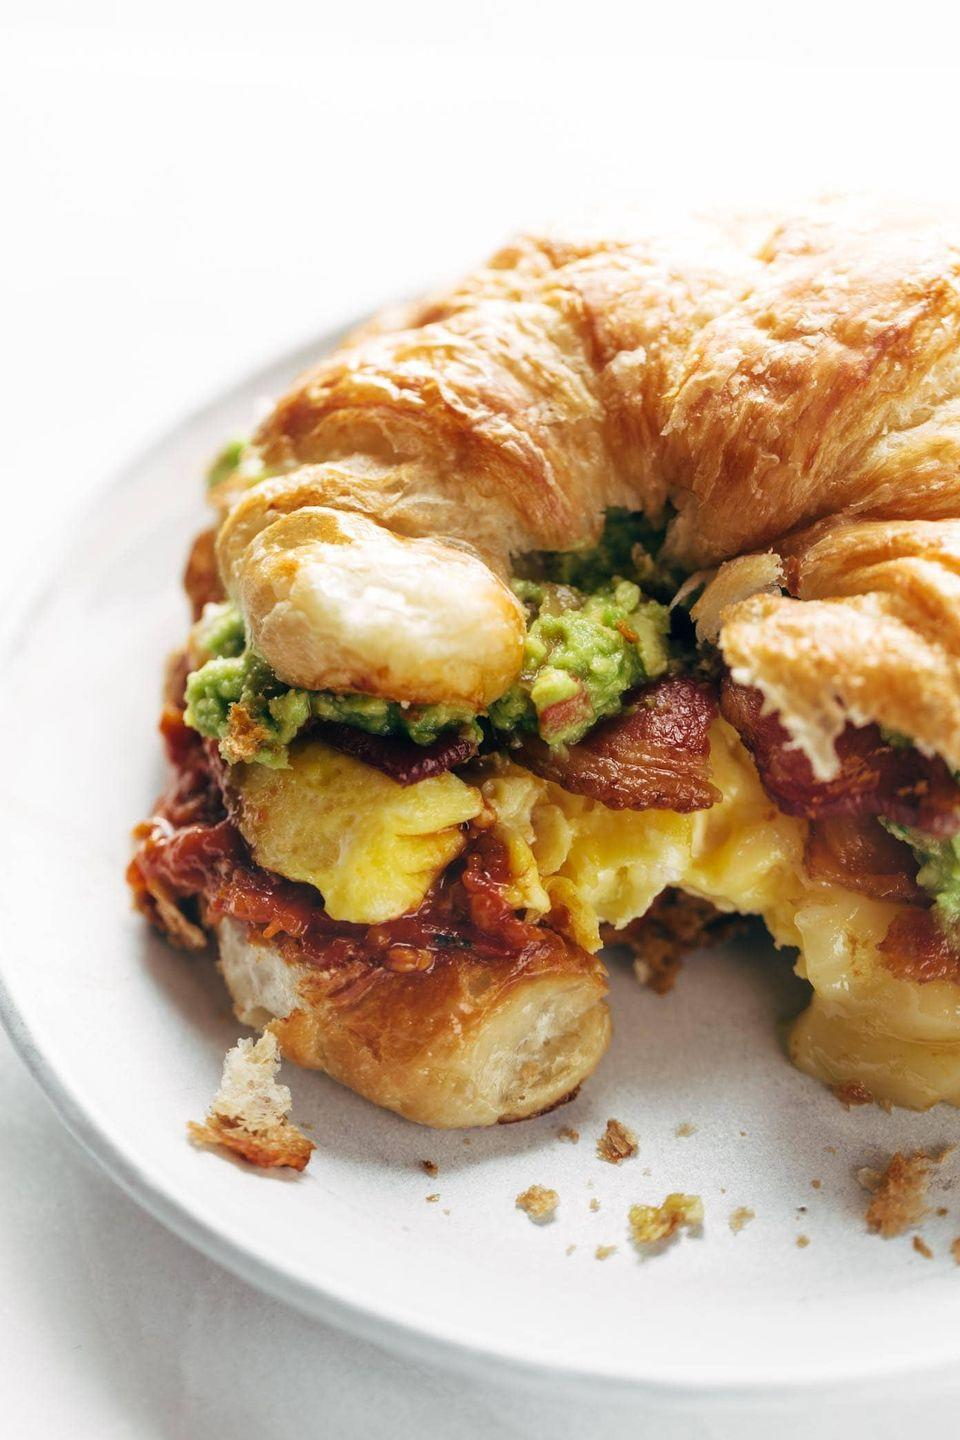 """<p>The garlic butter tomato sauce makes a typical sandwich unforgettably delicious.</p><p><strong>Get the recipe at <a href=""""https://pinchofyum.com/breakfast-sandwich"""" rel=""""nofollow noopener"""" target=""""_blank"""" data-ylk=""""slk:Pinch of Yum"""" class=""""link rapid-noclick-resp"""">Pinch of Yum</a>.</strong></p>"""